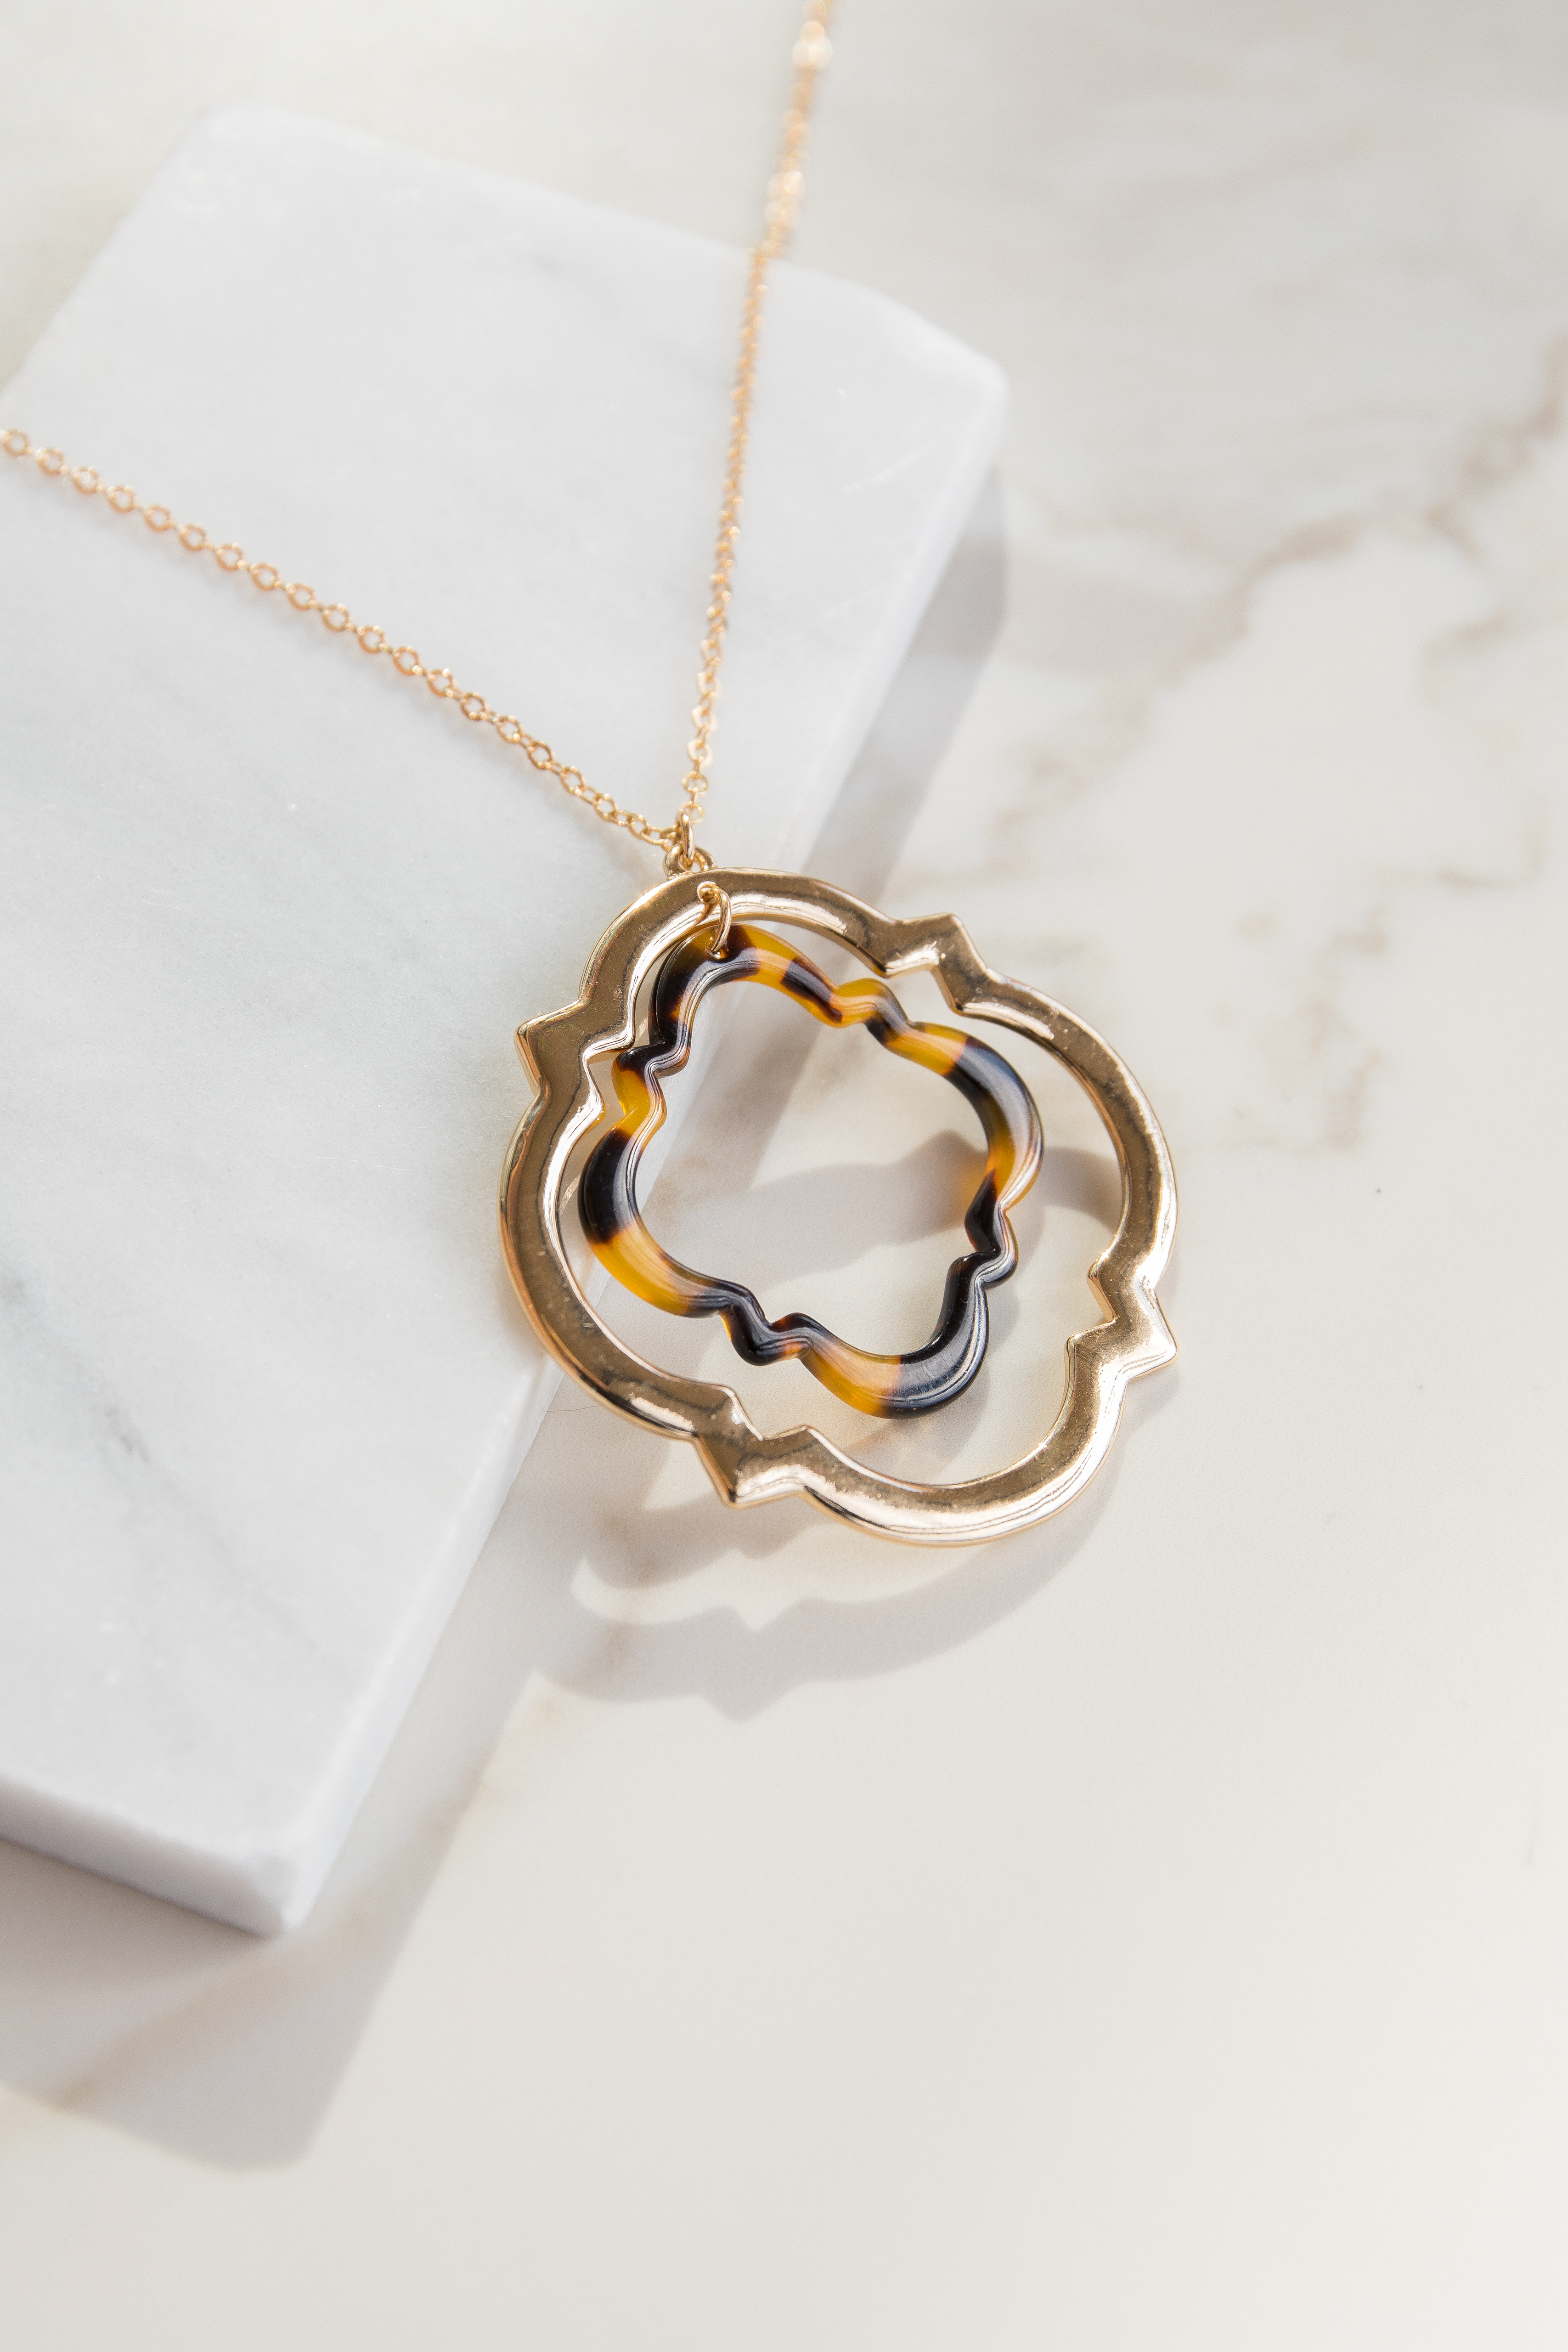 Gold Necklace with Geometric Tortoise Shell Print Pendant